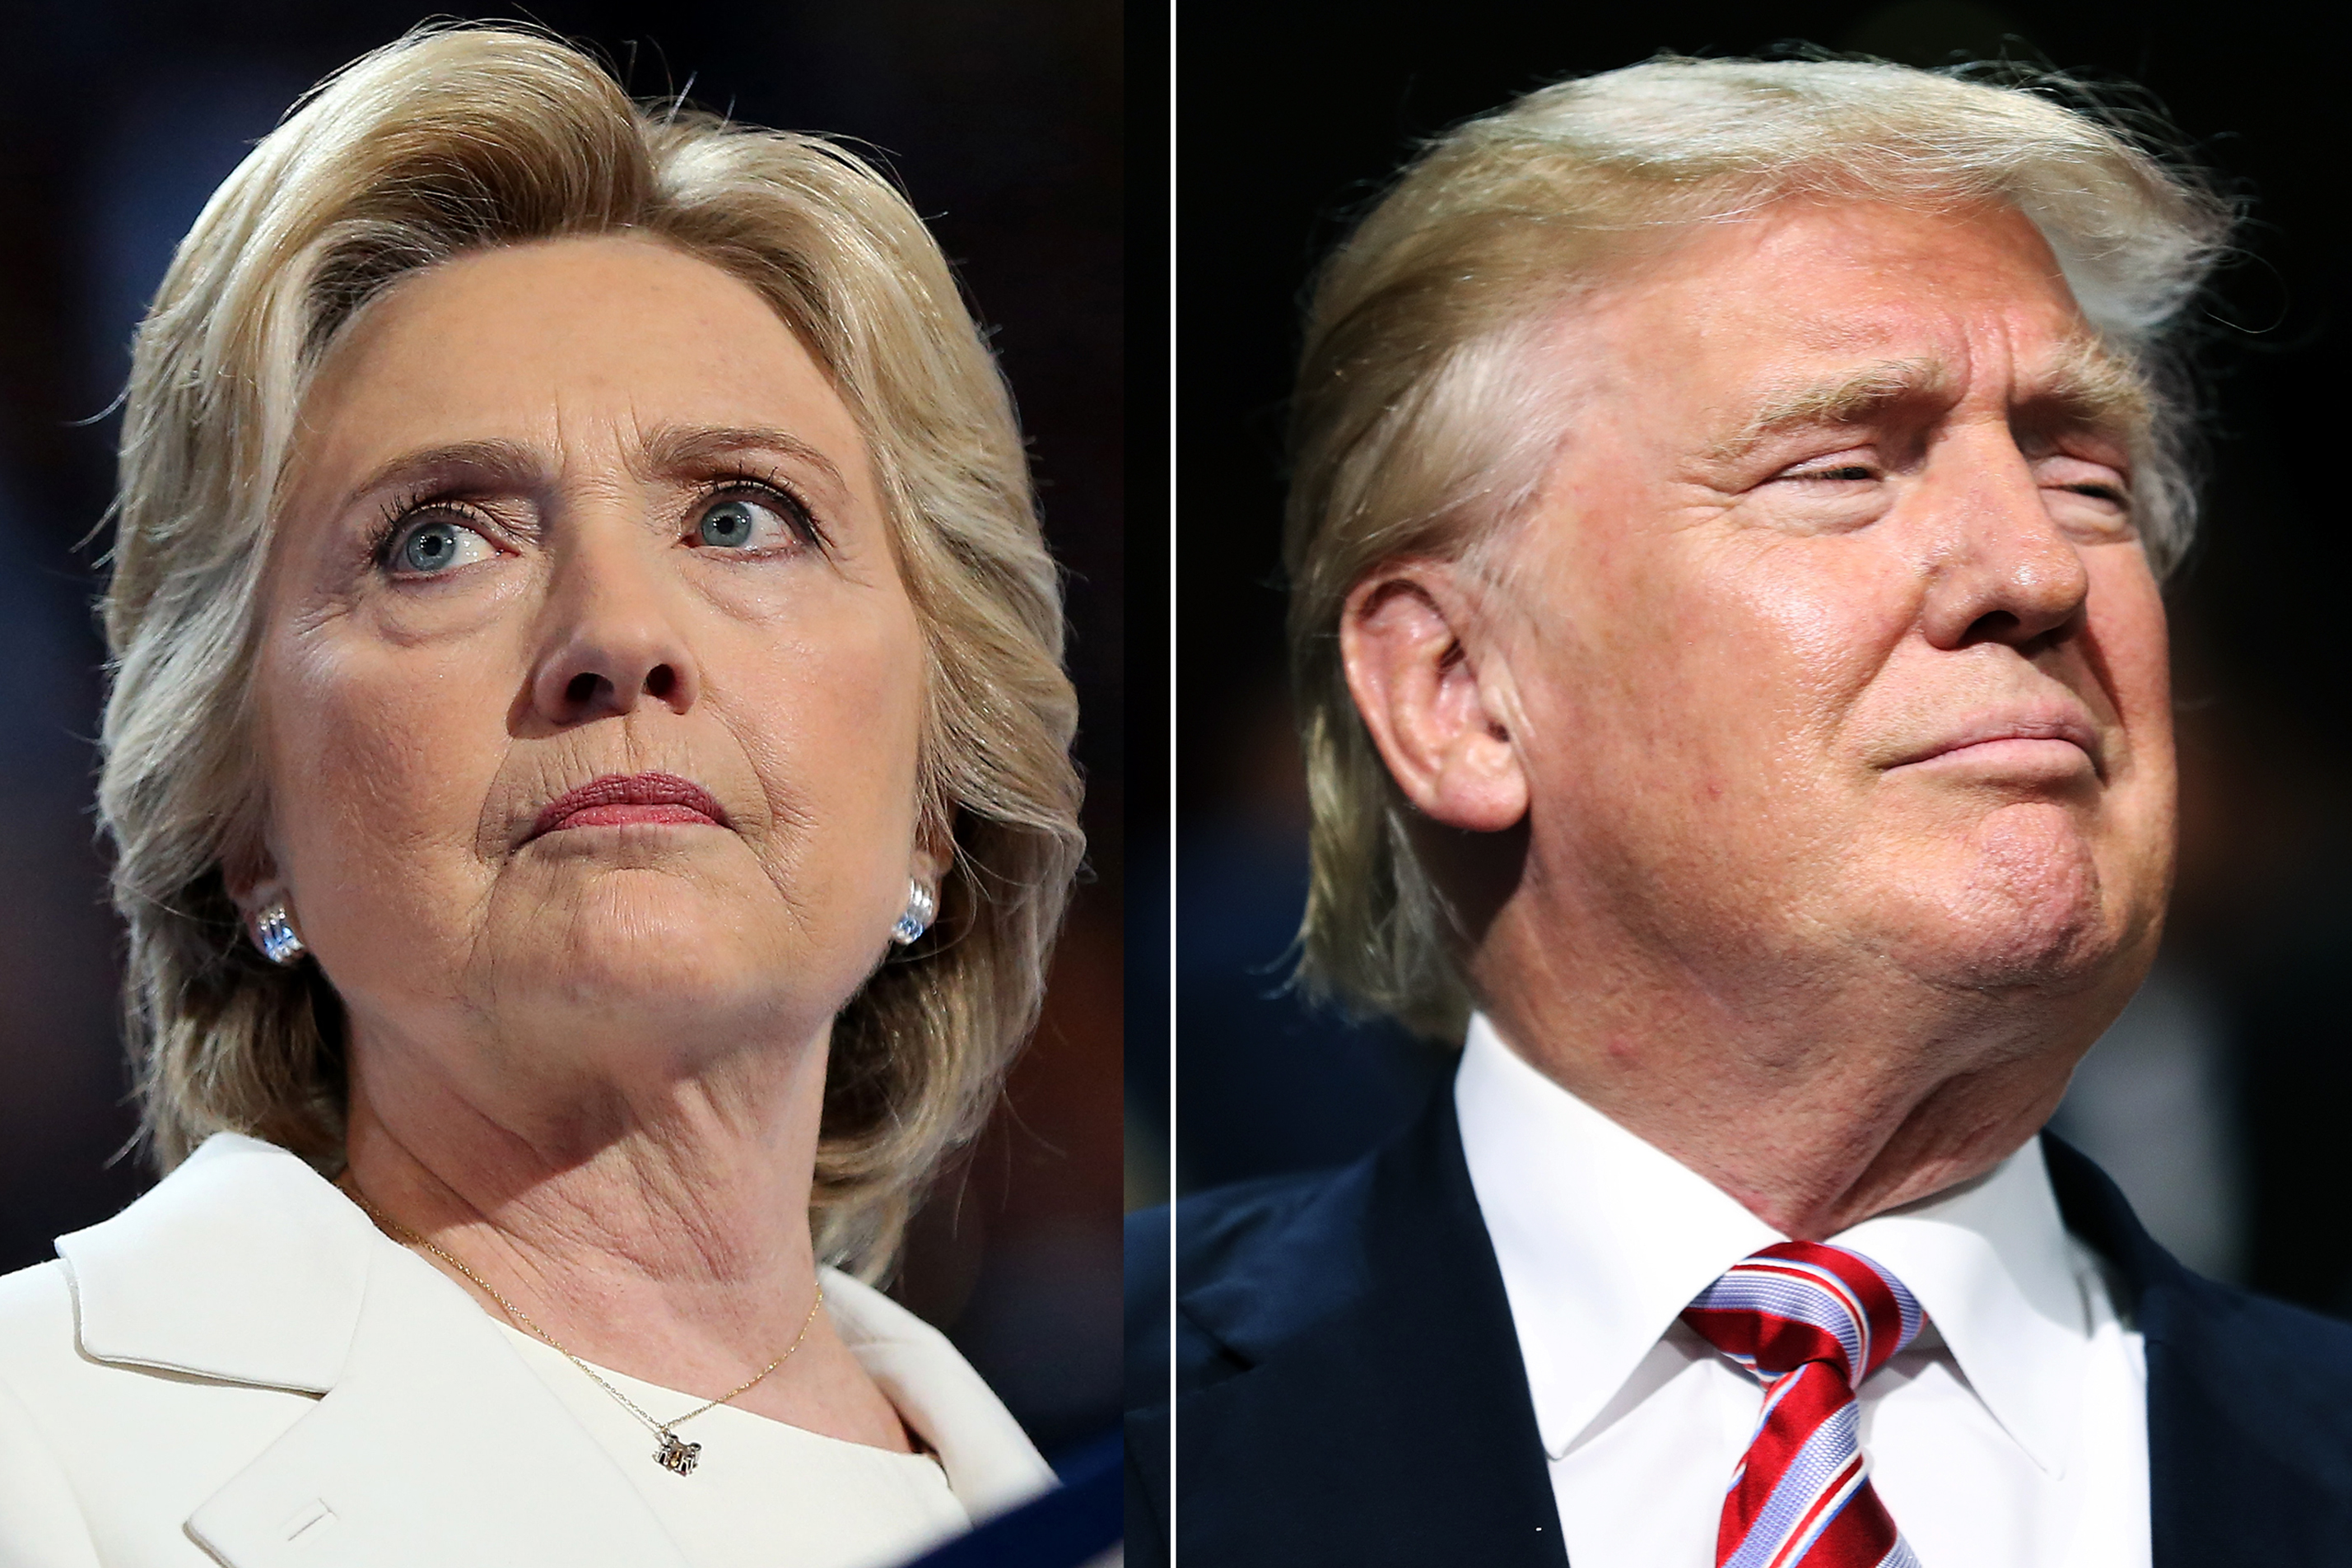 Hillary Clinton in Philadelphia, PA, on July 28, 2016 (L); Donald Trump in Cleveland, OH, on July 20, 2016.